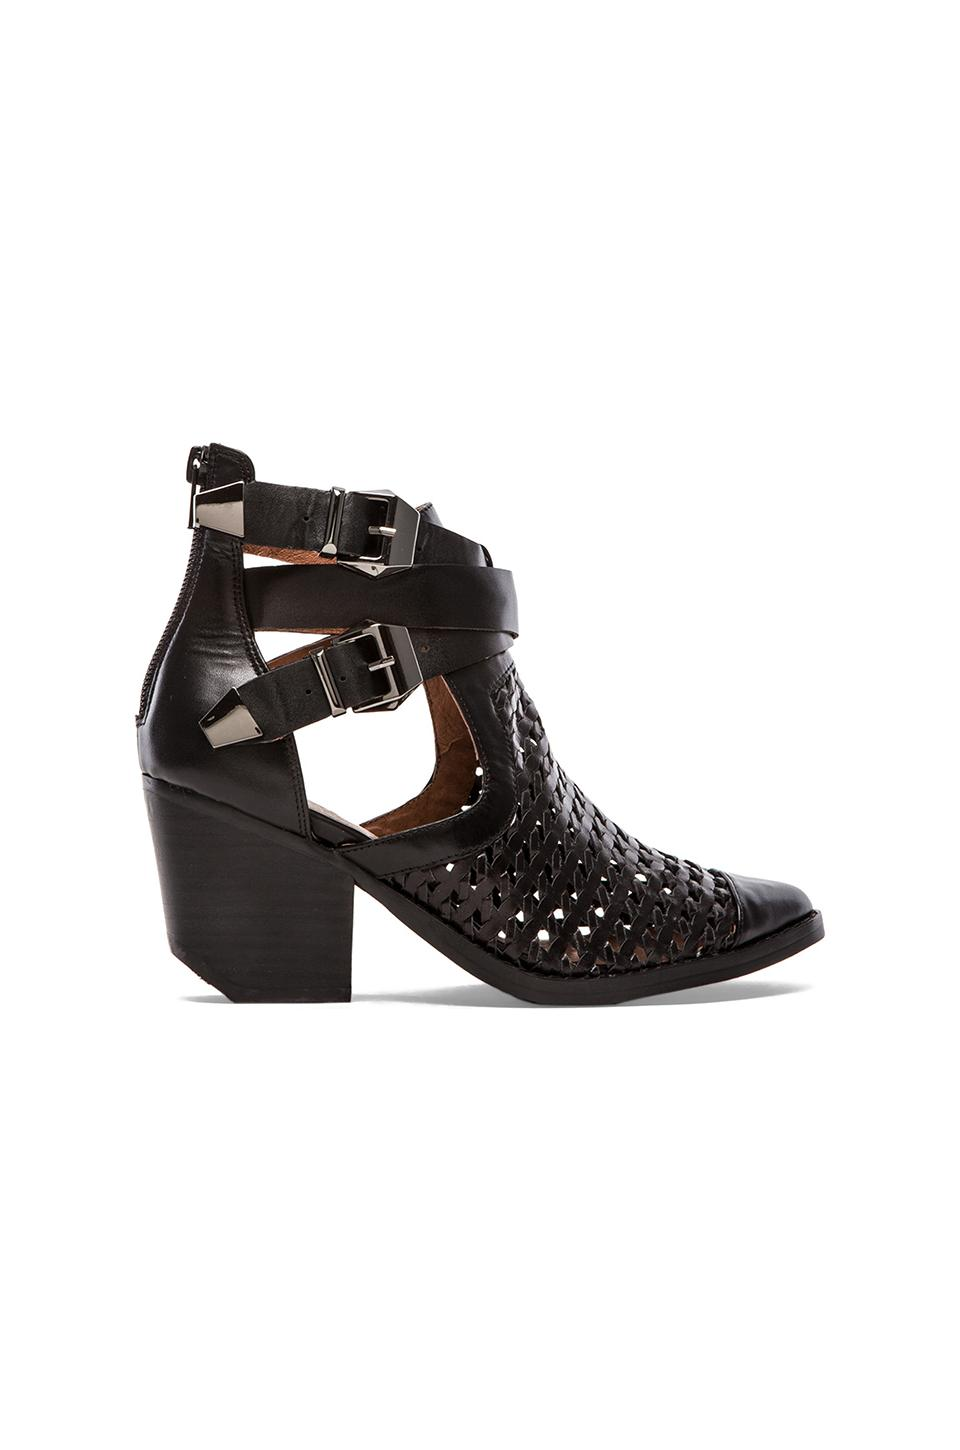 Jeffrey Campbell Buck Bootie in Black